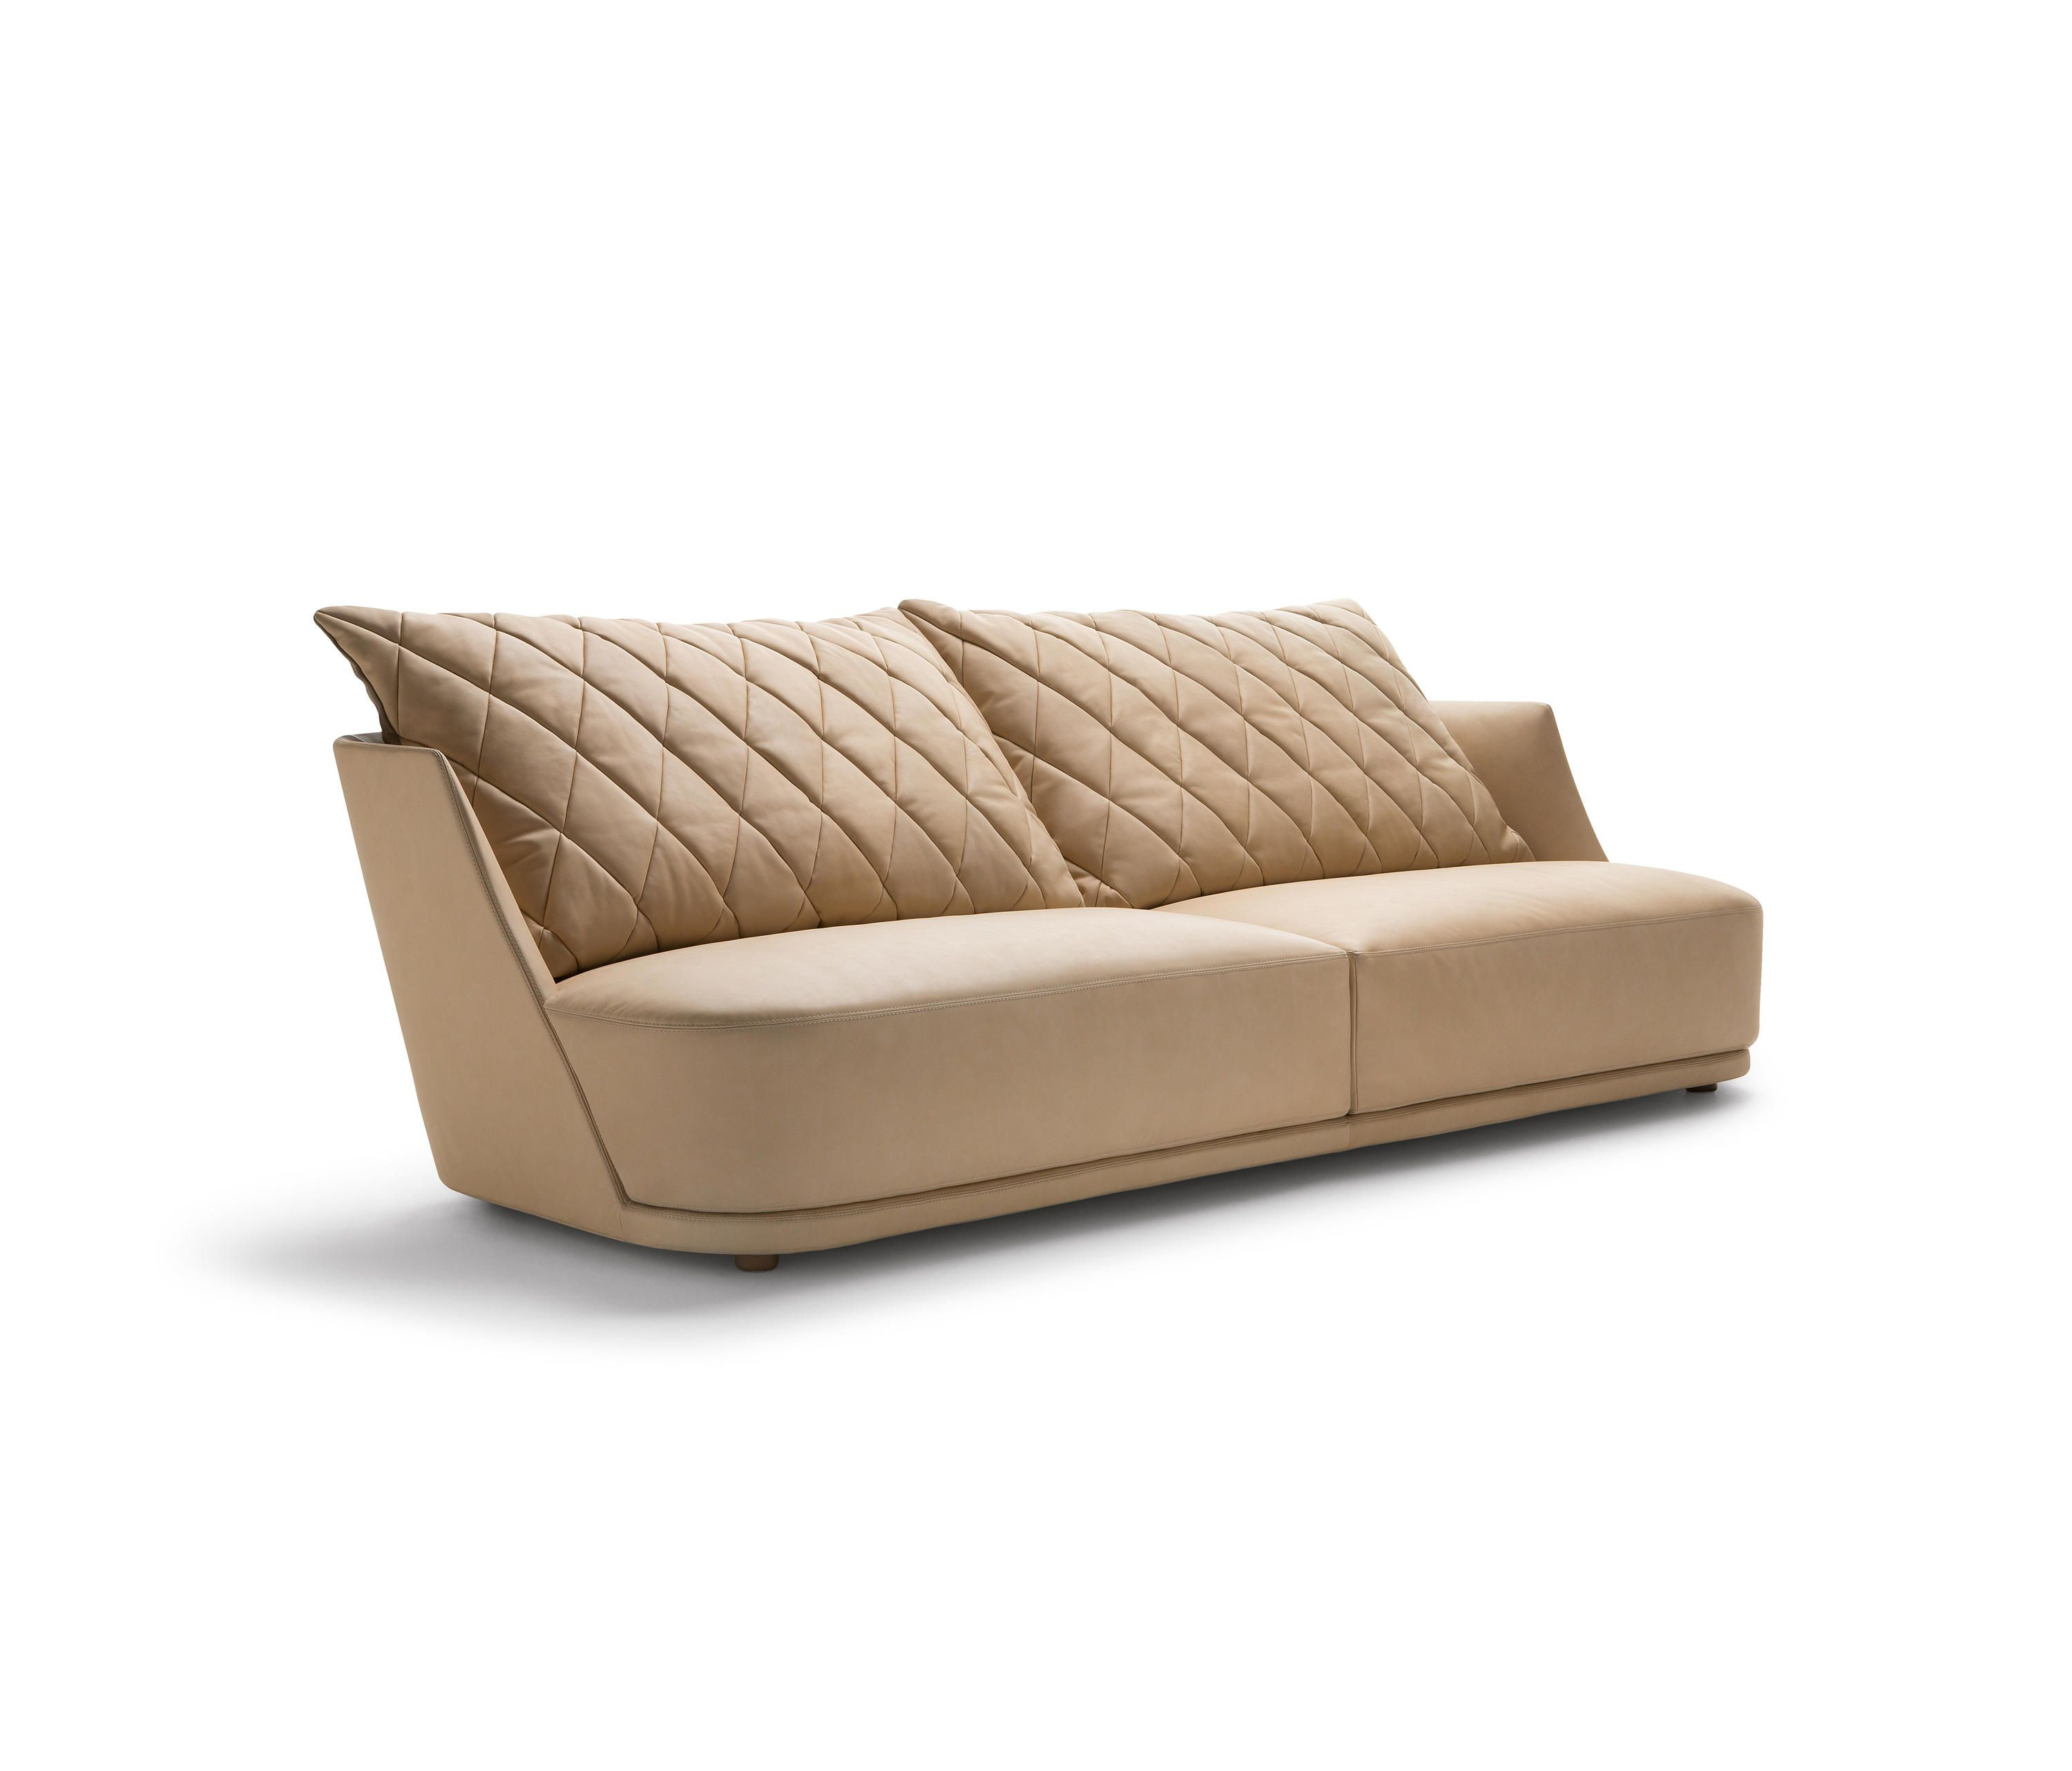 Grace – Sofasalberta Pacific Furniture | Architonic | Dw单位沙发 In Grace Sofa Chairs (Photo 7 of 25)